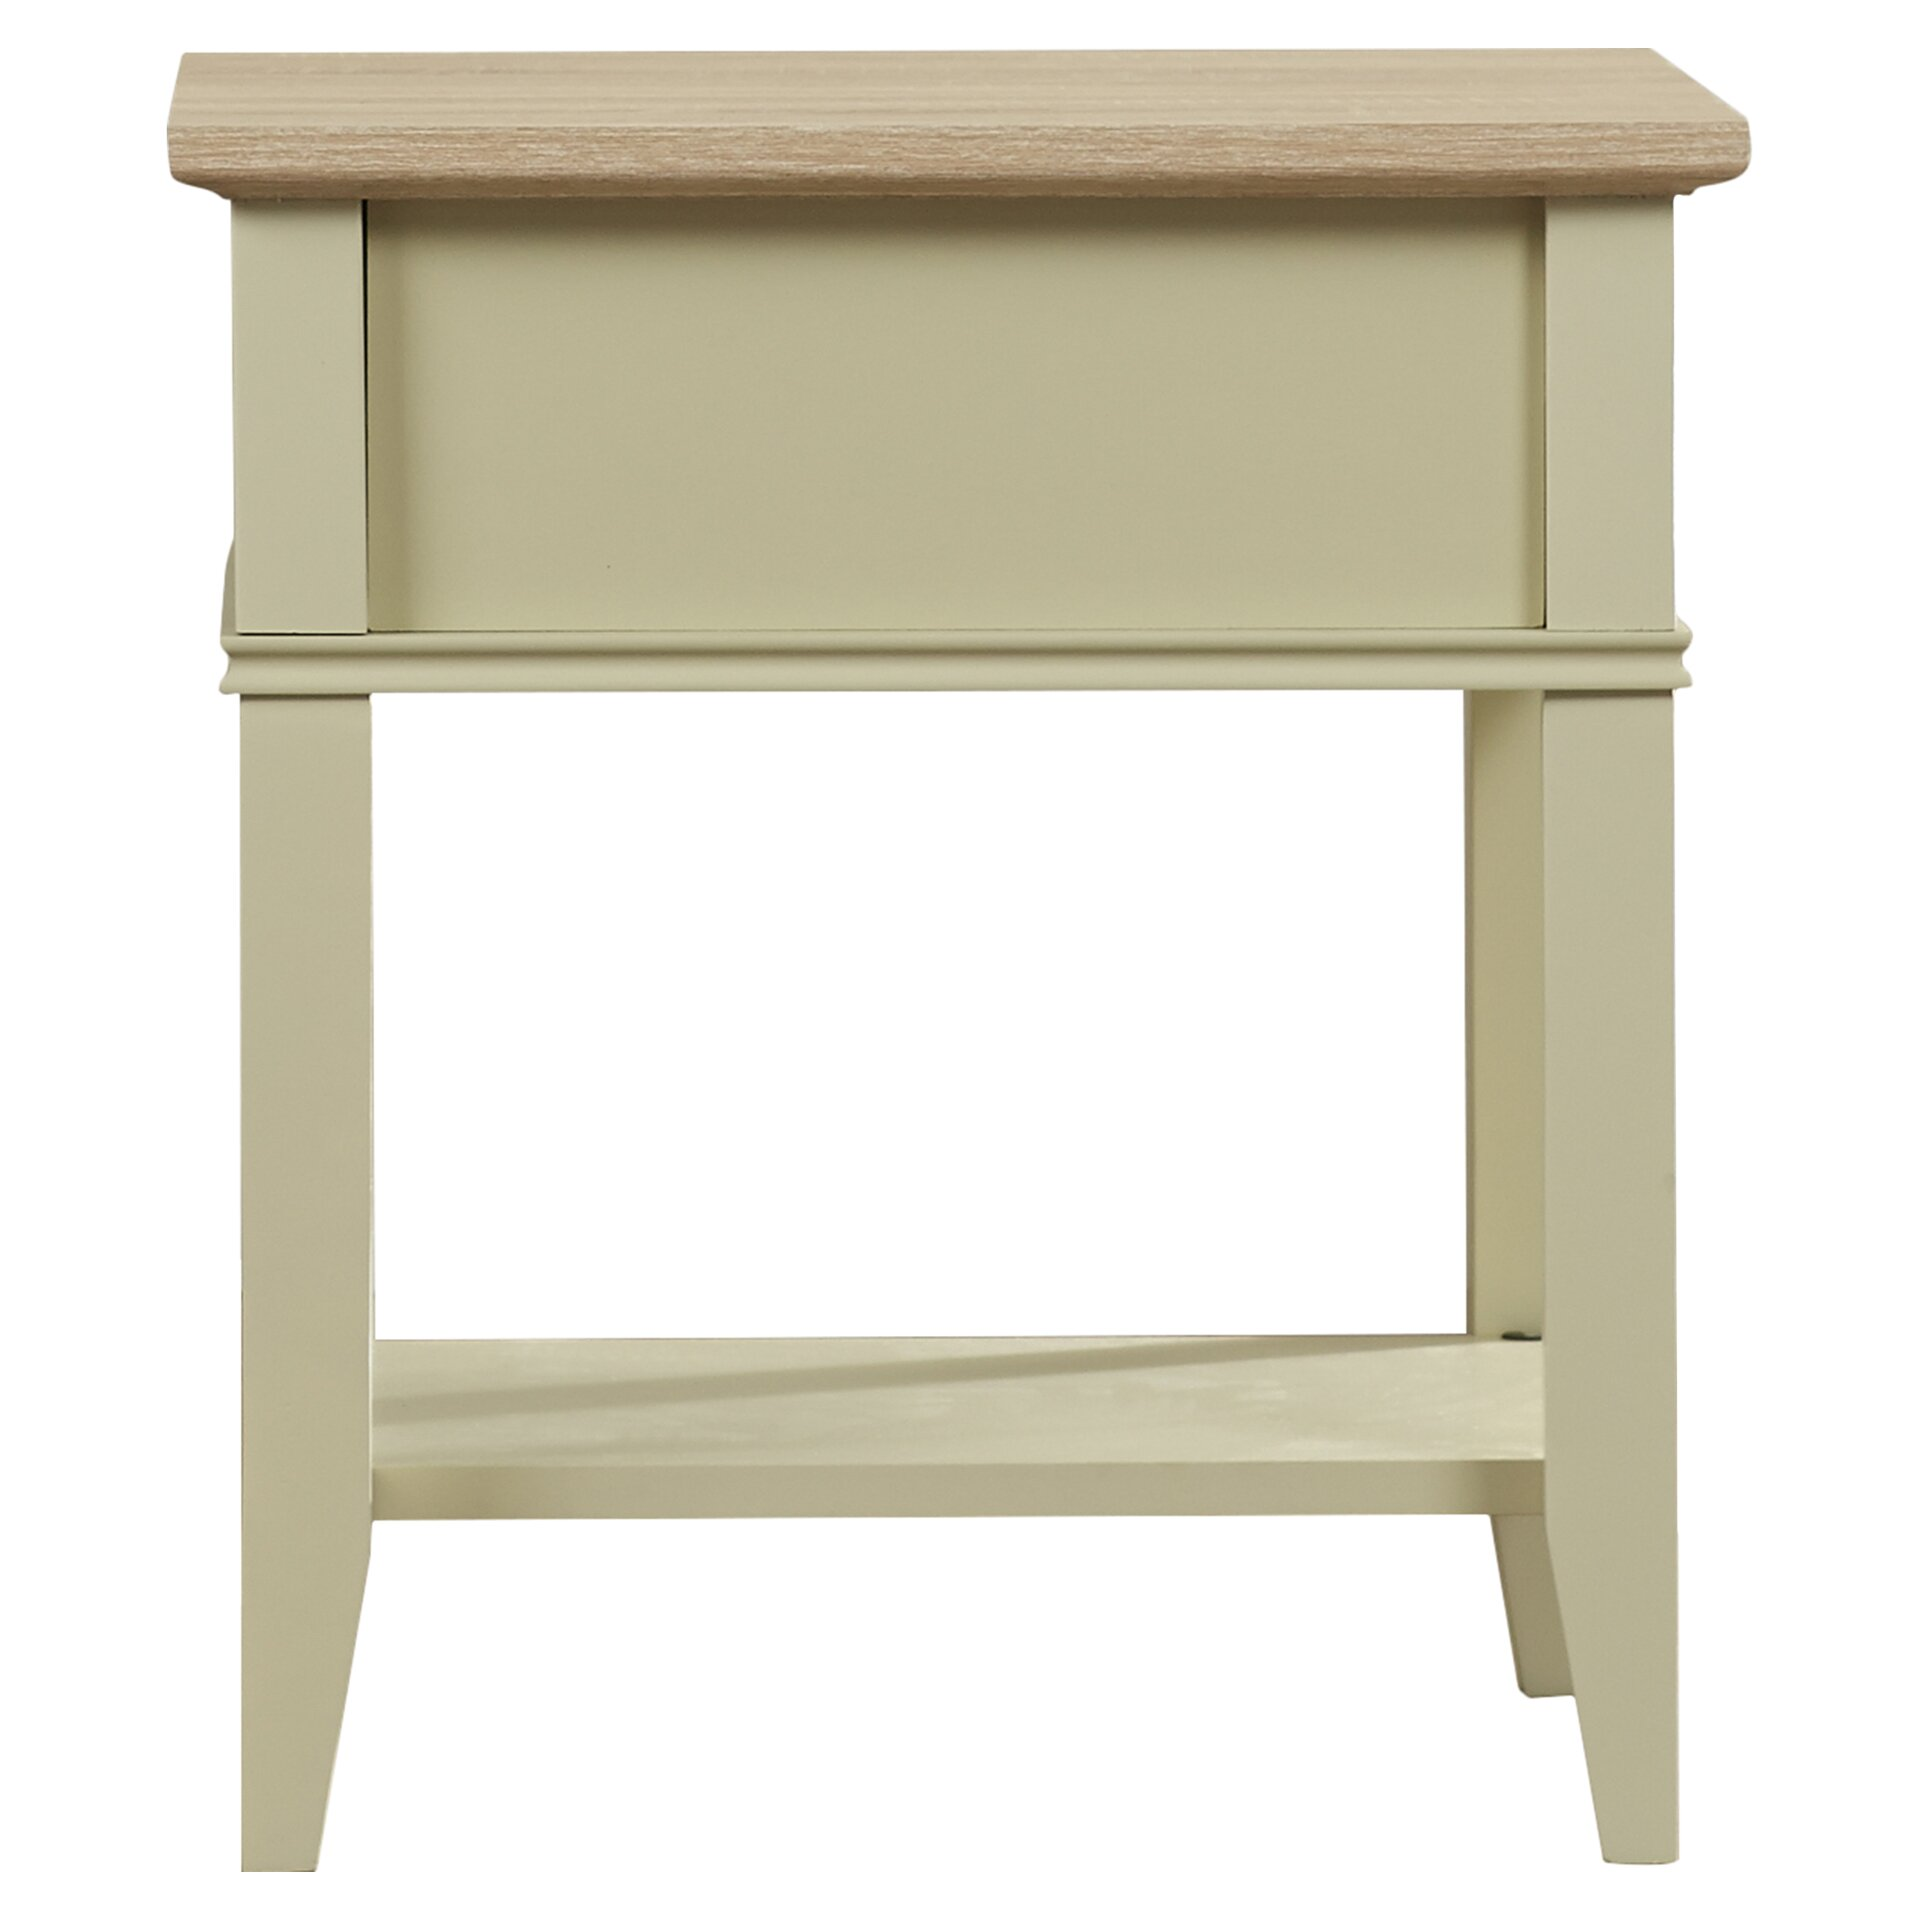 Beachcrest home dundee end table with 1 drawer reviews for 1 drawer table